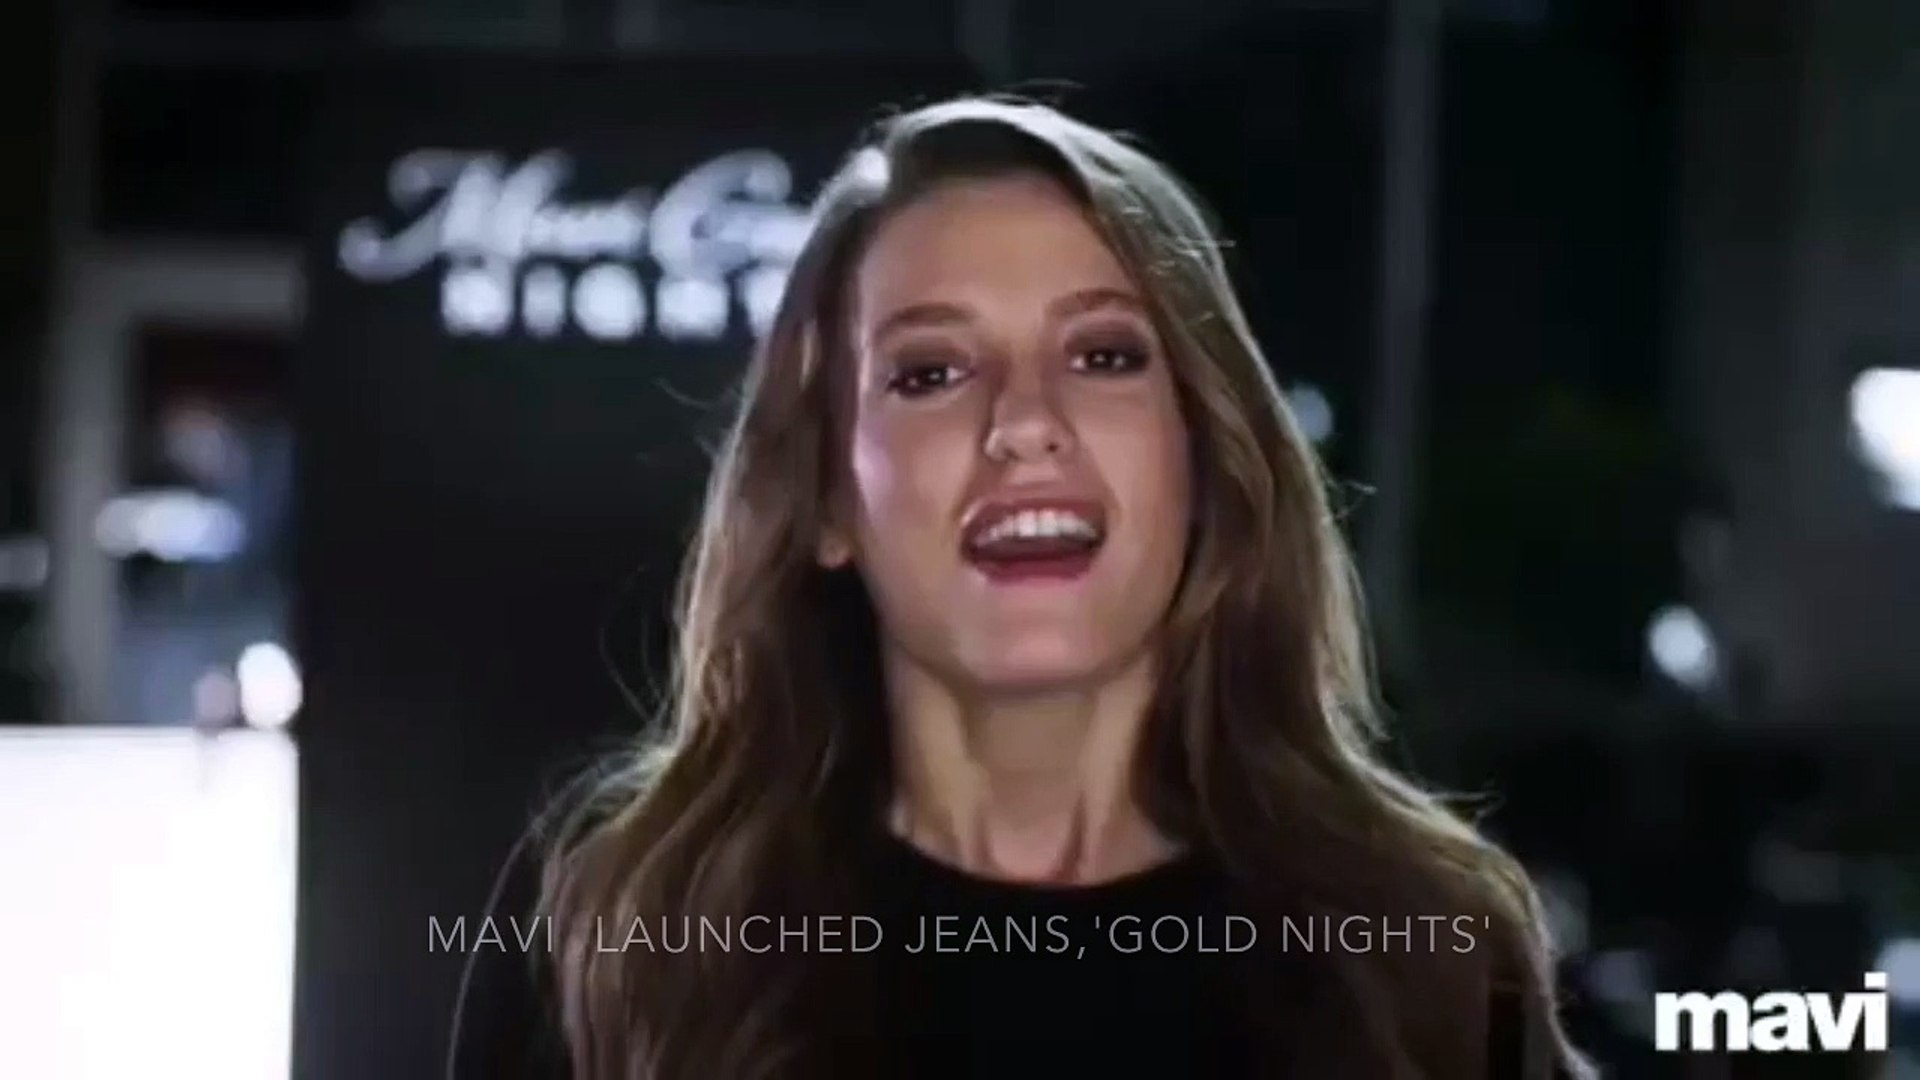 Serenay Sarikaya Mavi Gold nights( Oct 9th 2015)